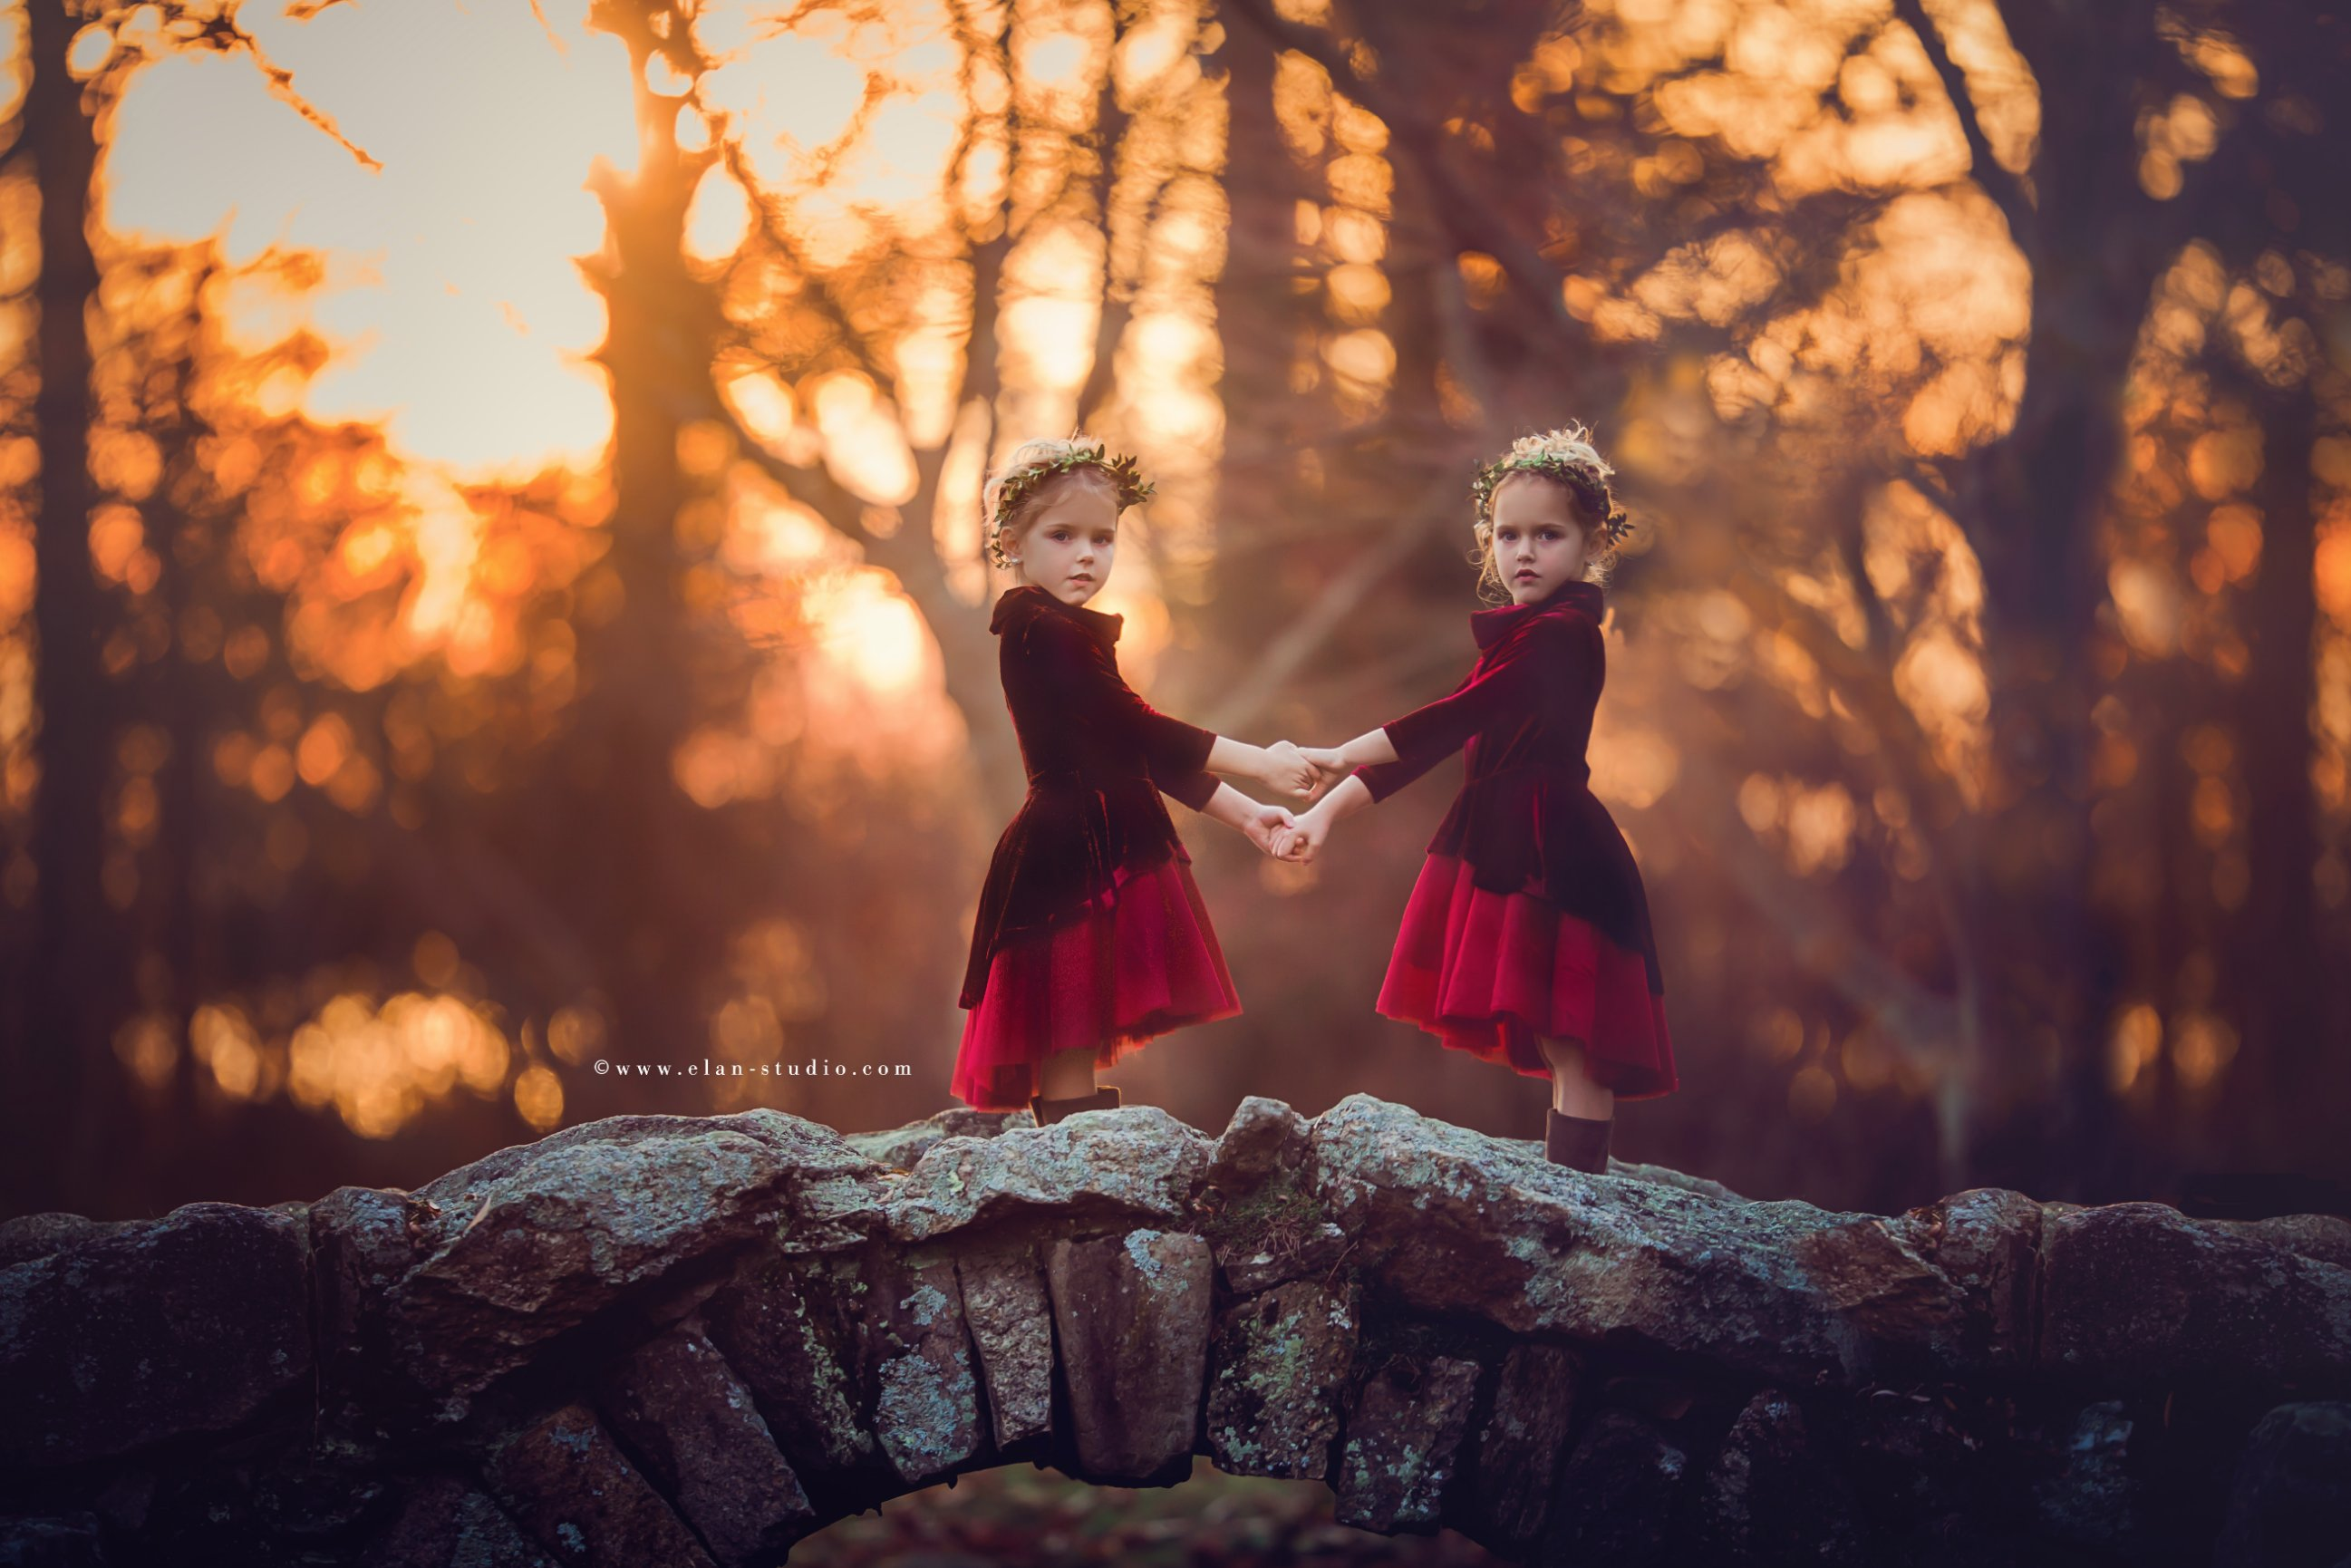 twin girls wearing matching cranberry colored dresses against natural autumn background